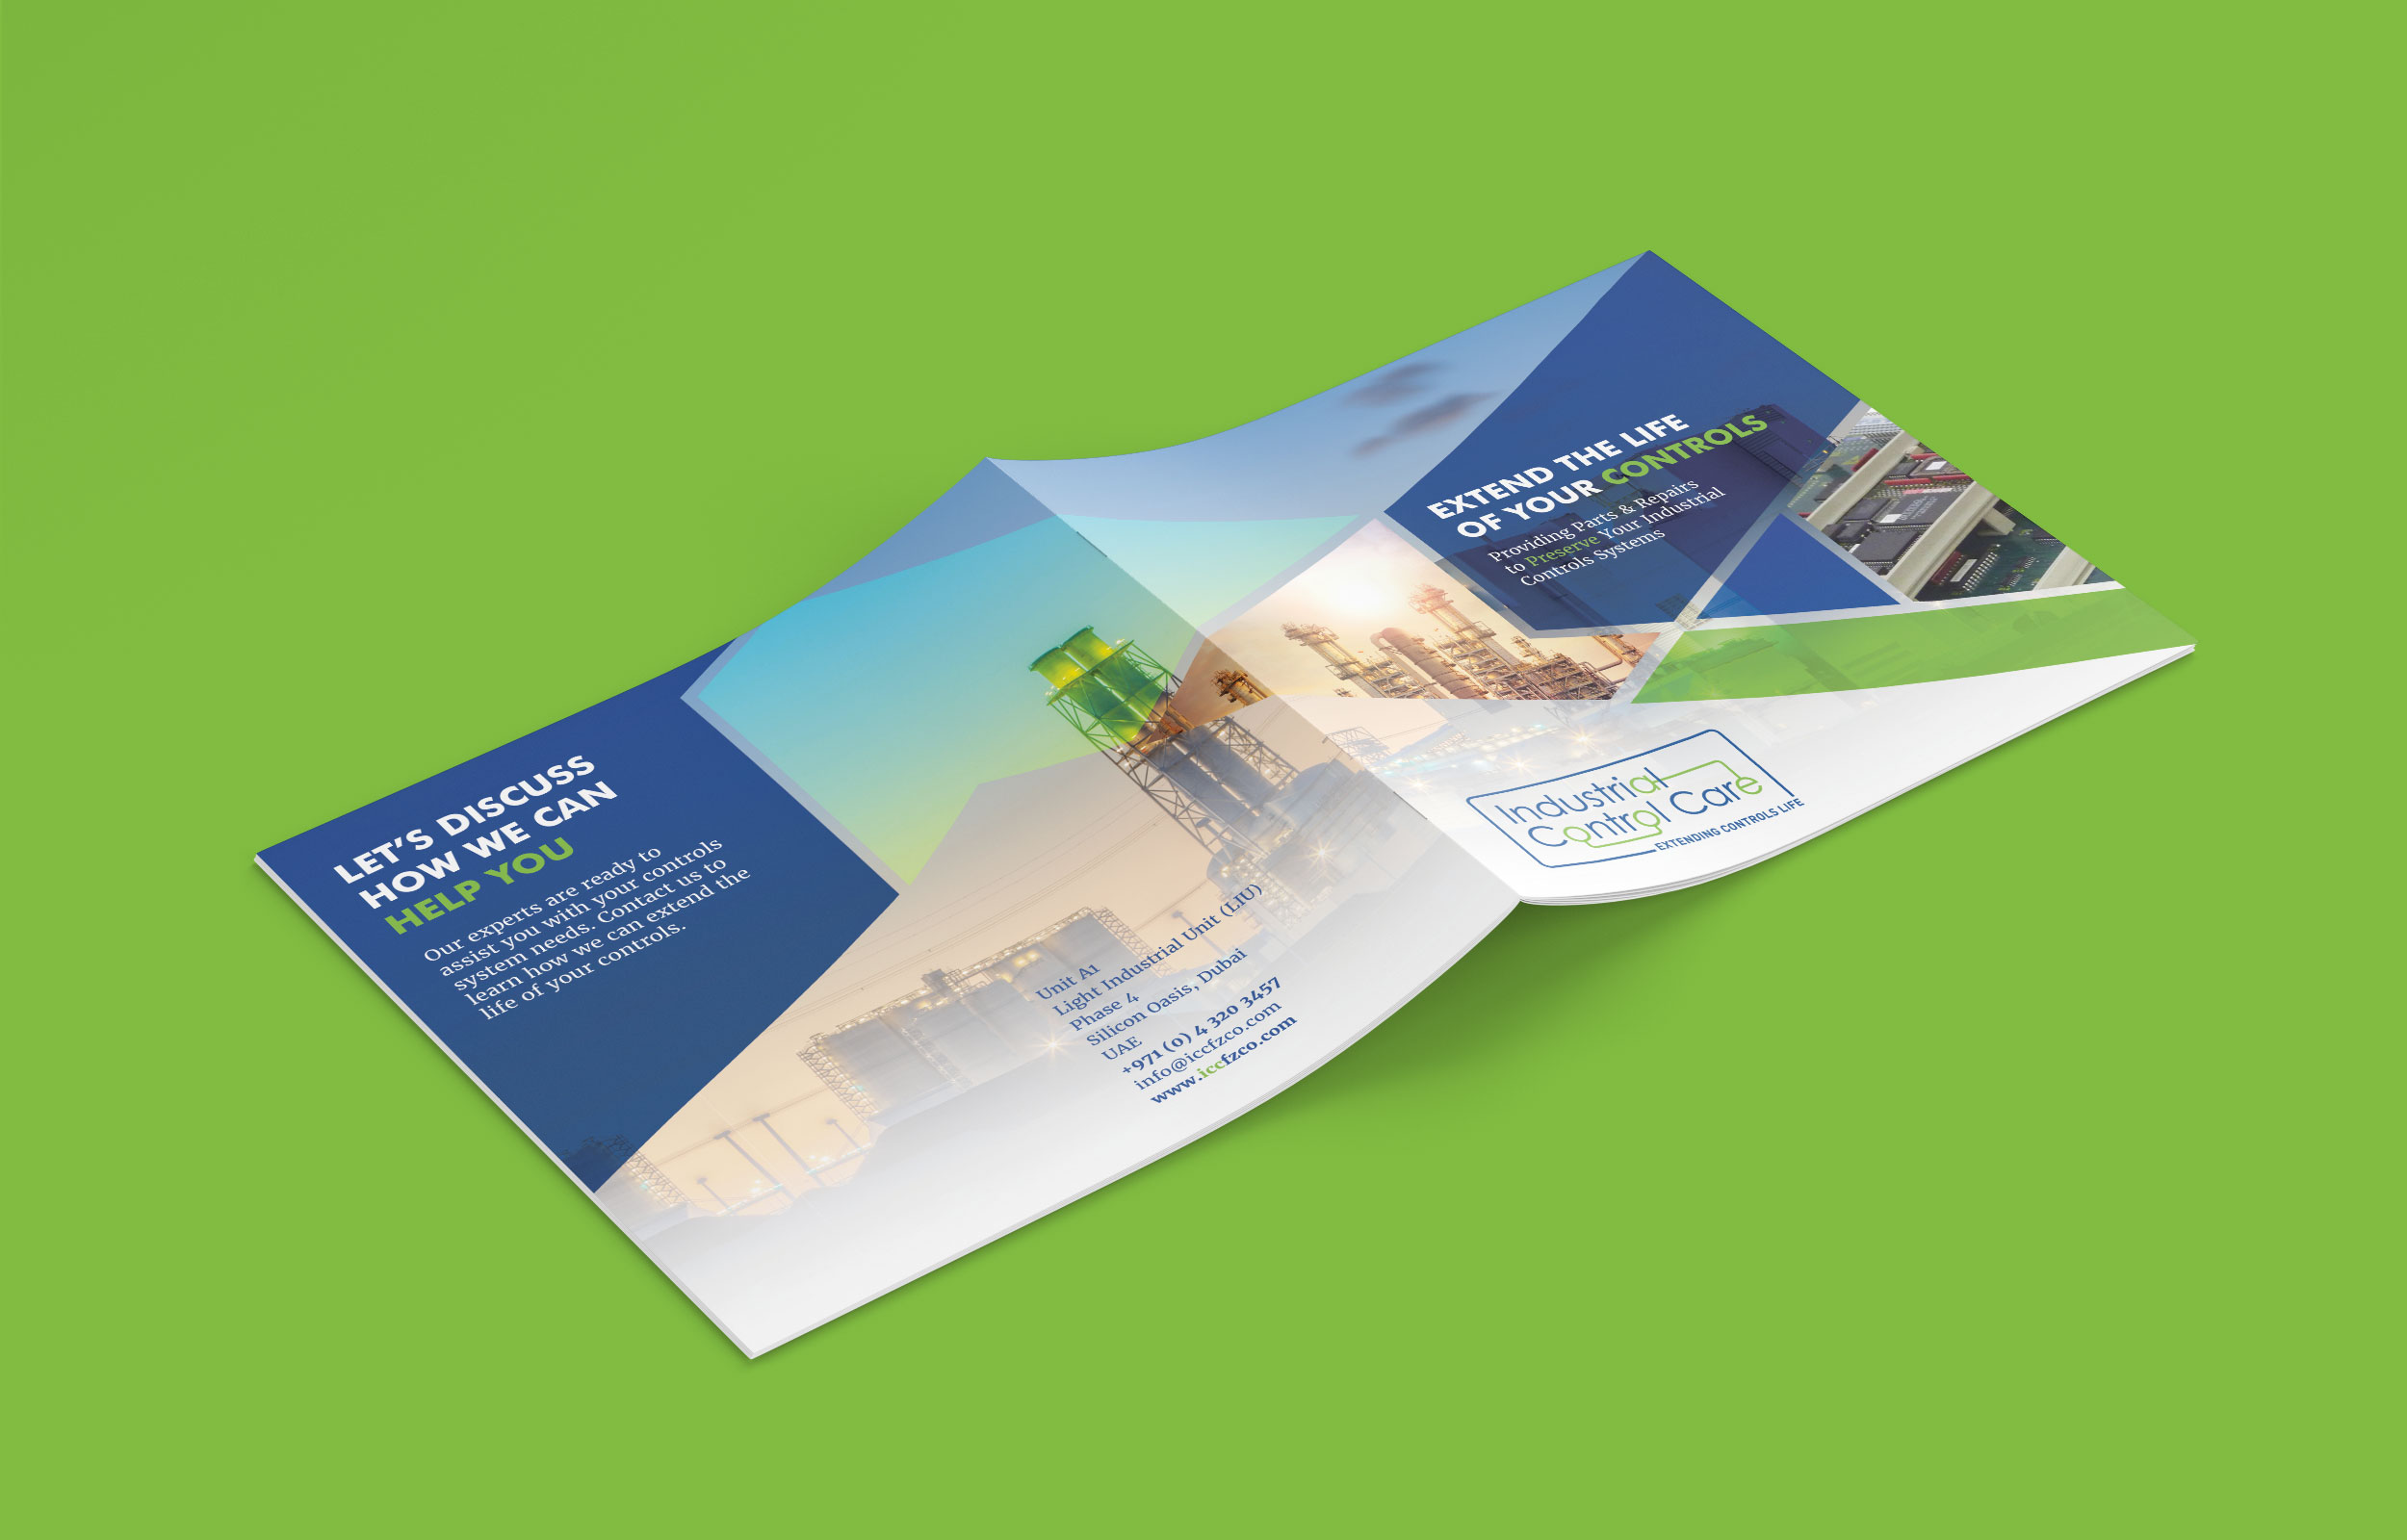 Open brochure on a green background